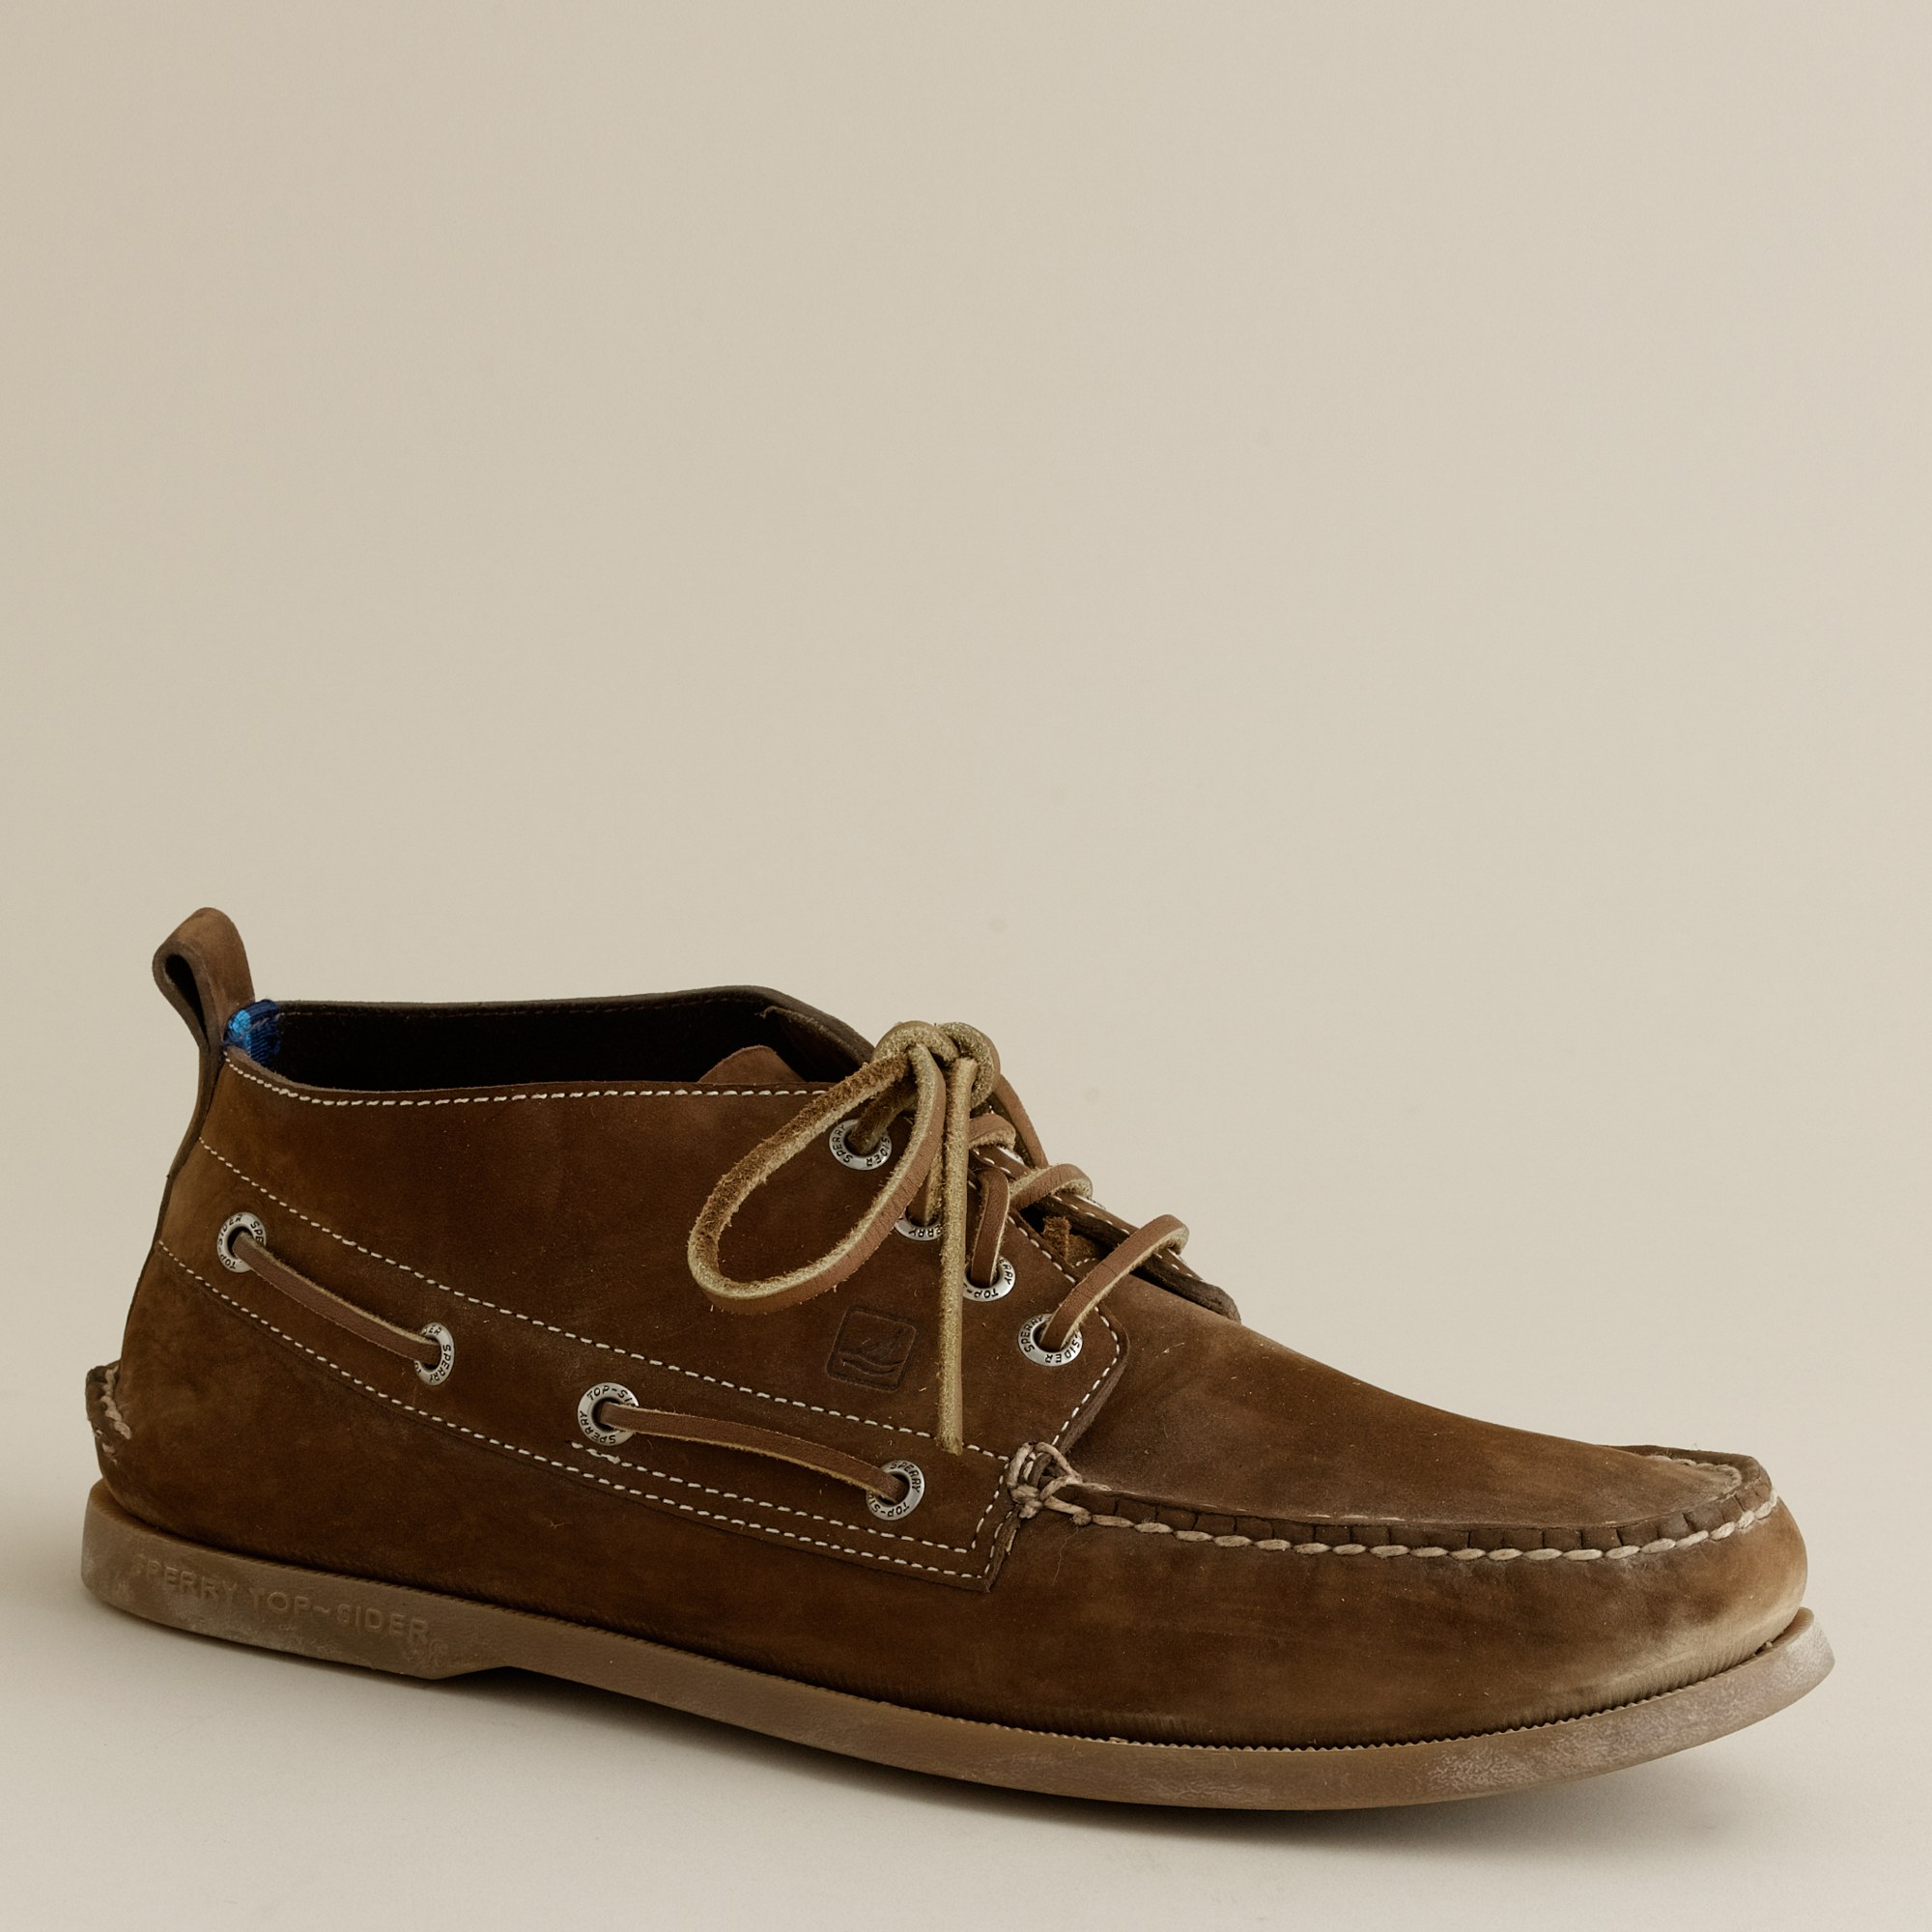 J.crew Sperry Top-sider® For J.crew Authentic Original Nubuck ...